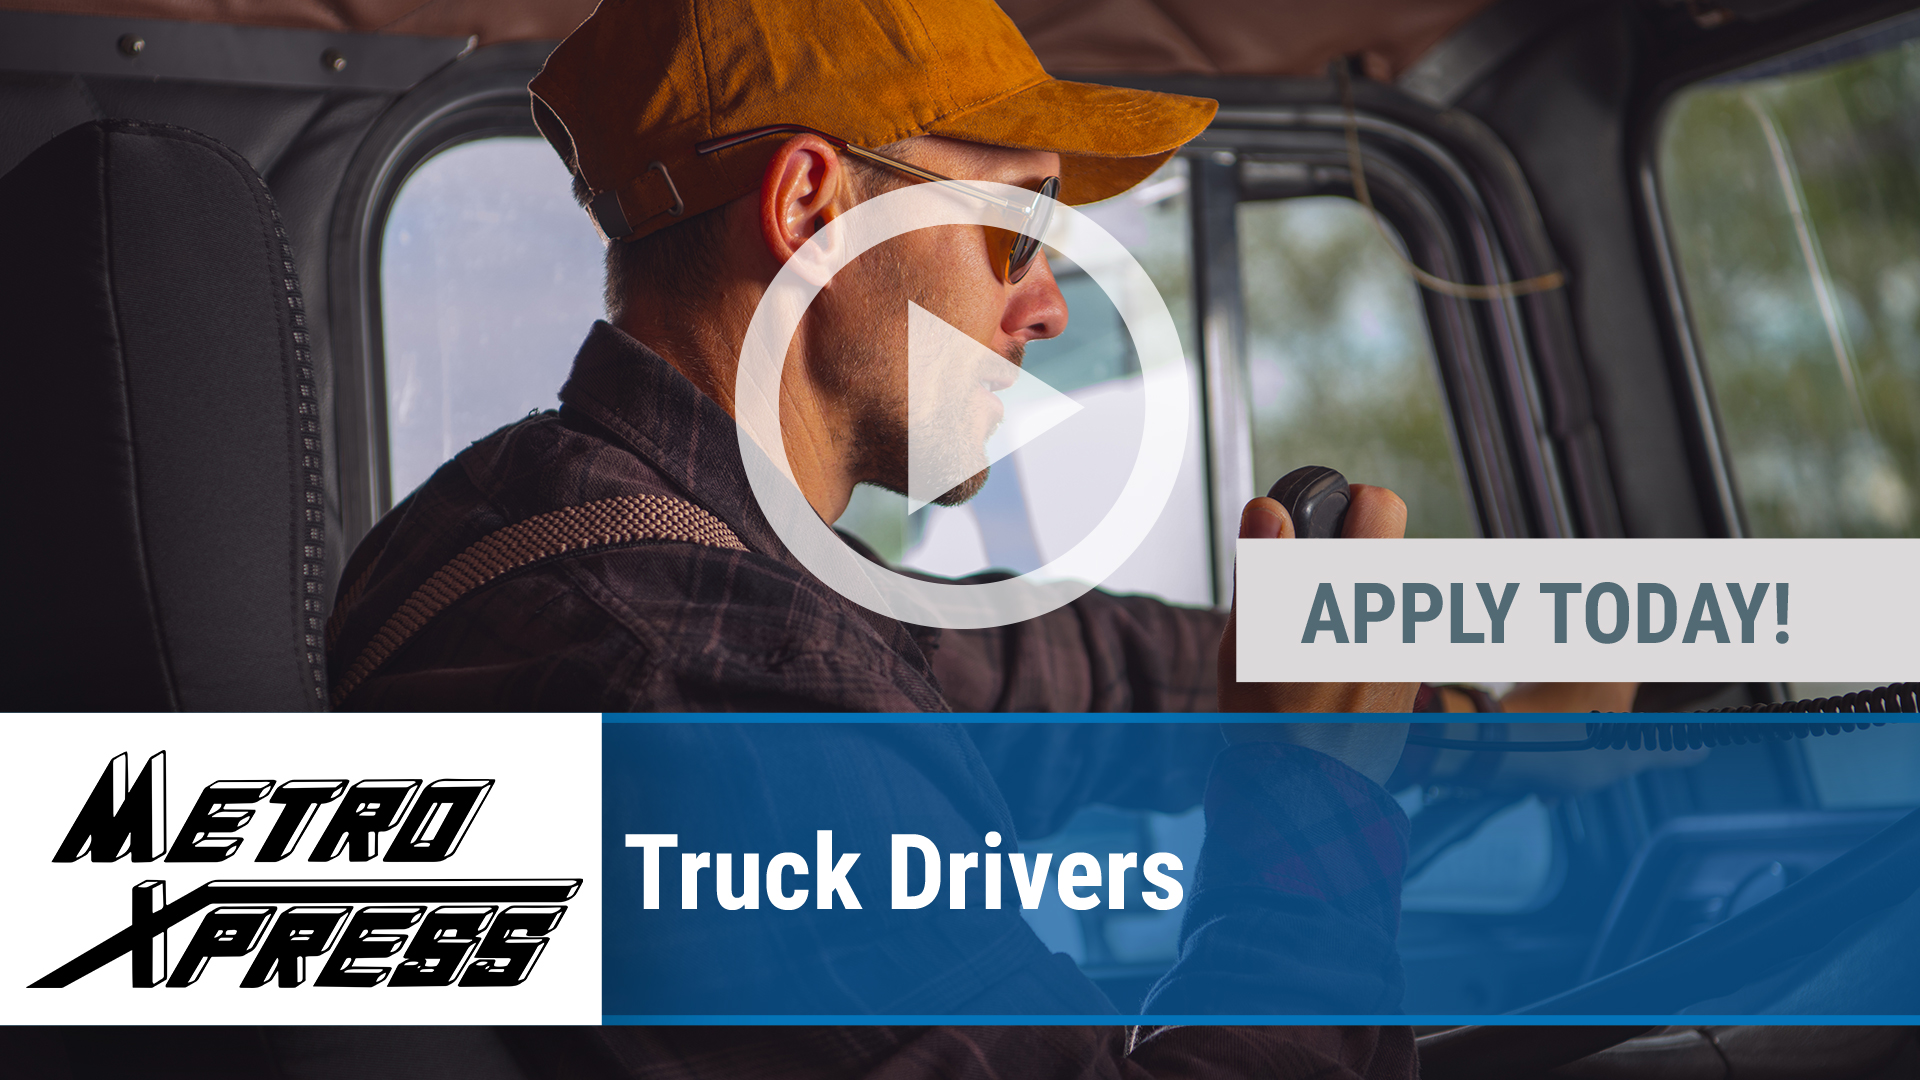 Watch our careers video for available job opening Truck Drivers in Wichita, KS